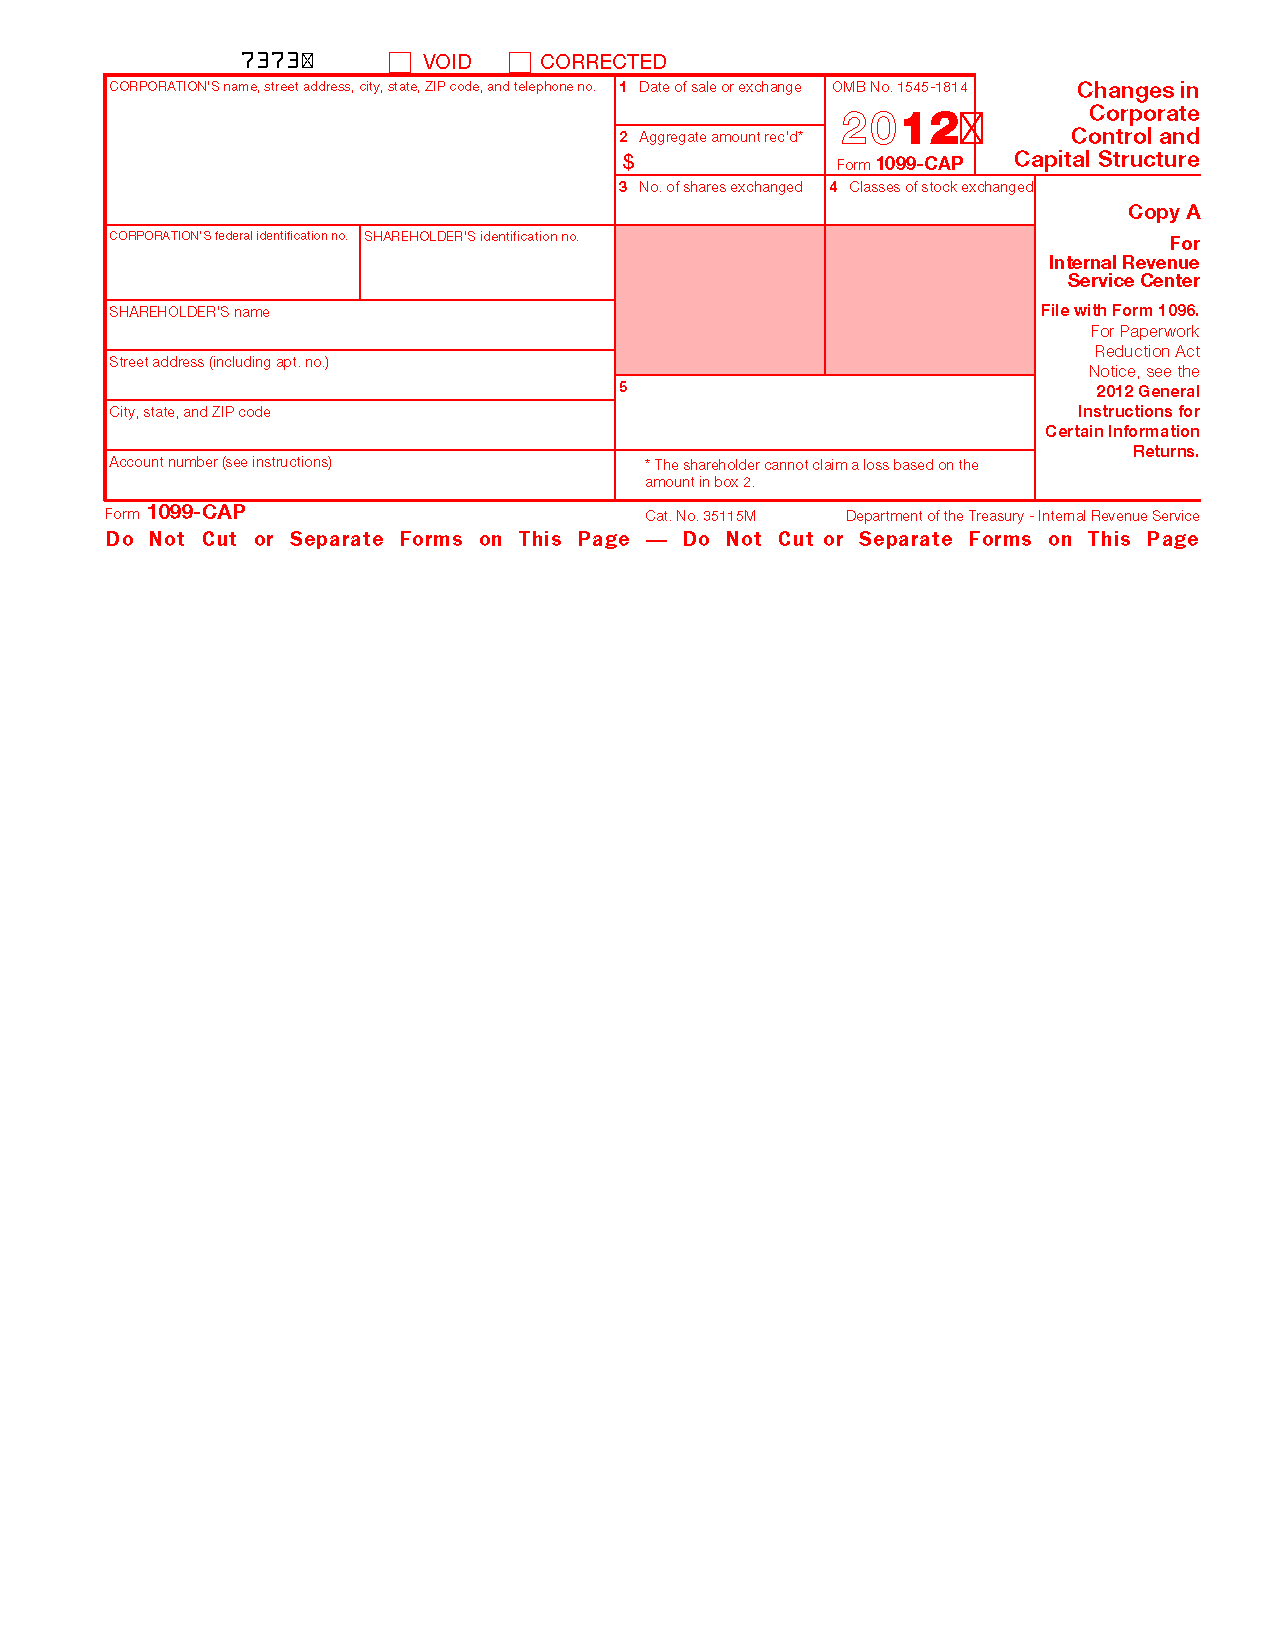 Form 1099-CAP Changes in Corporate Control and Capital Structure ...